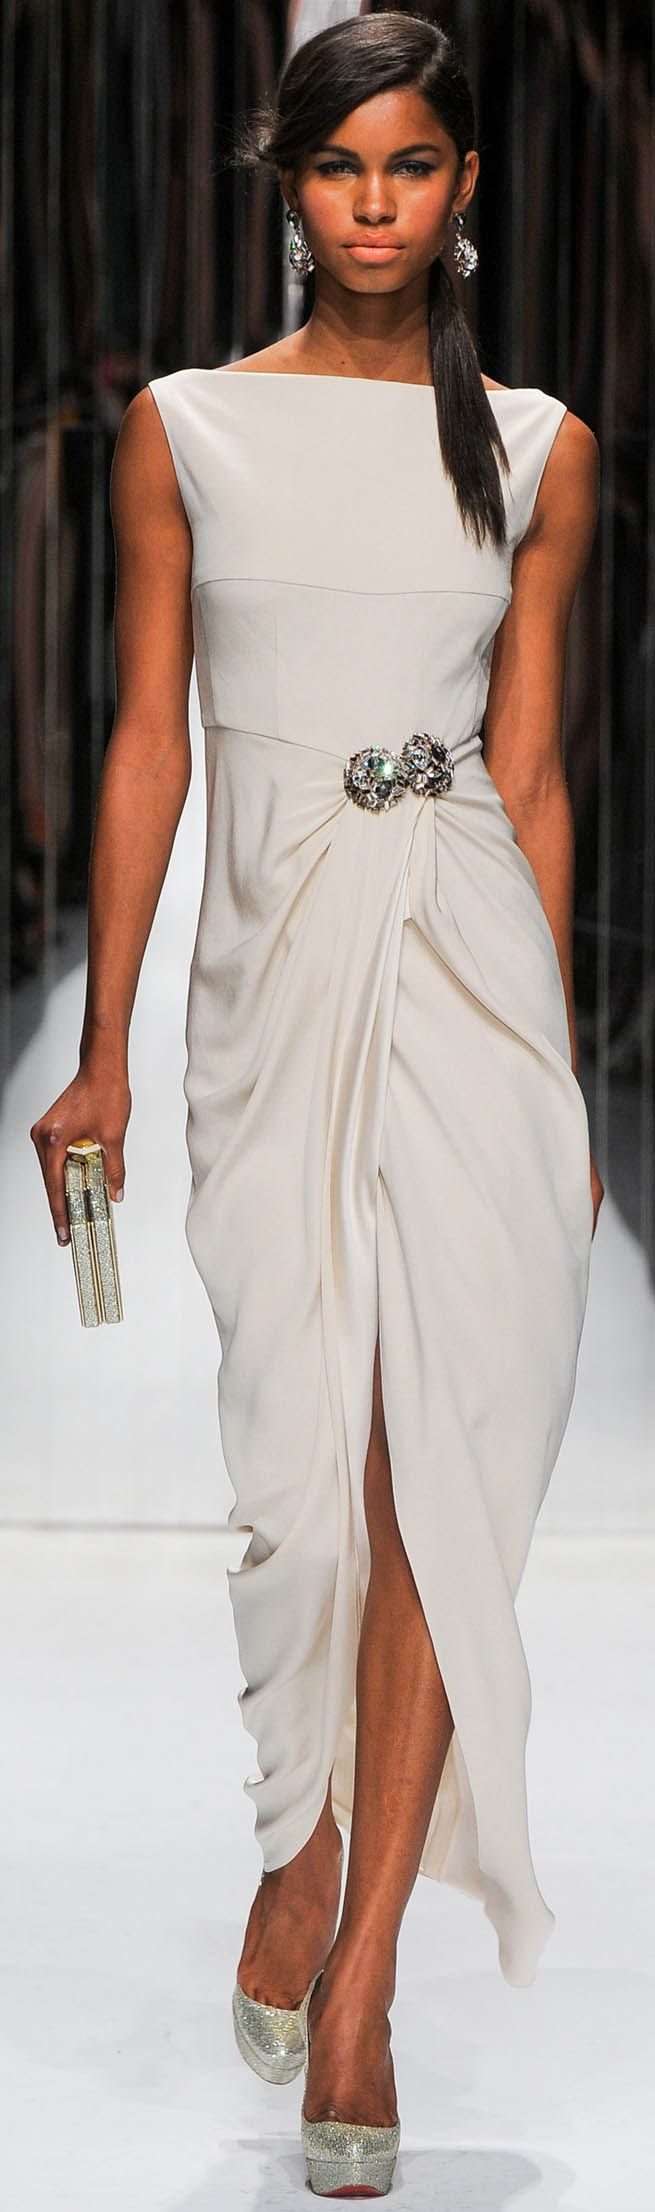 Jenny Packham Spring Summer 2013 Ready-To-Wear Collection -- LOVE this for mother of the groom...